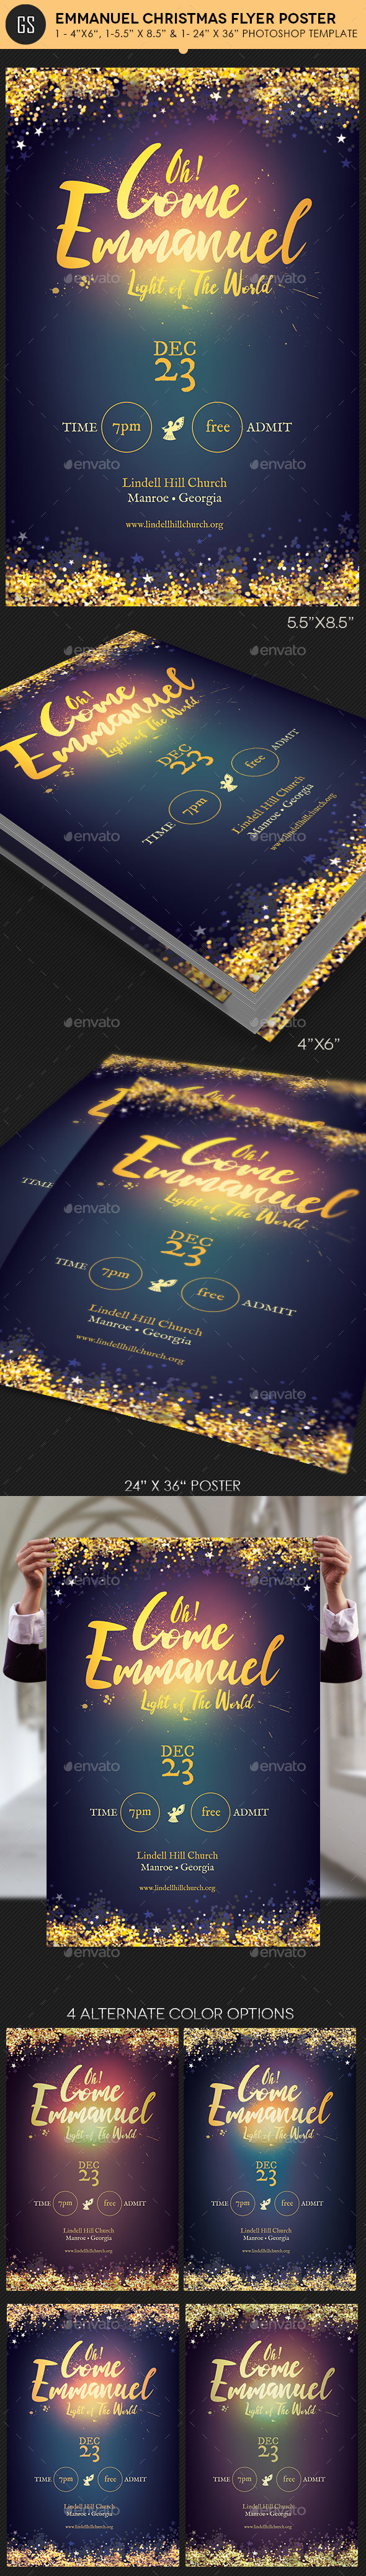 Emmanuel Christmas Cantata Flyer Poster Template - Church Flyers